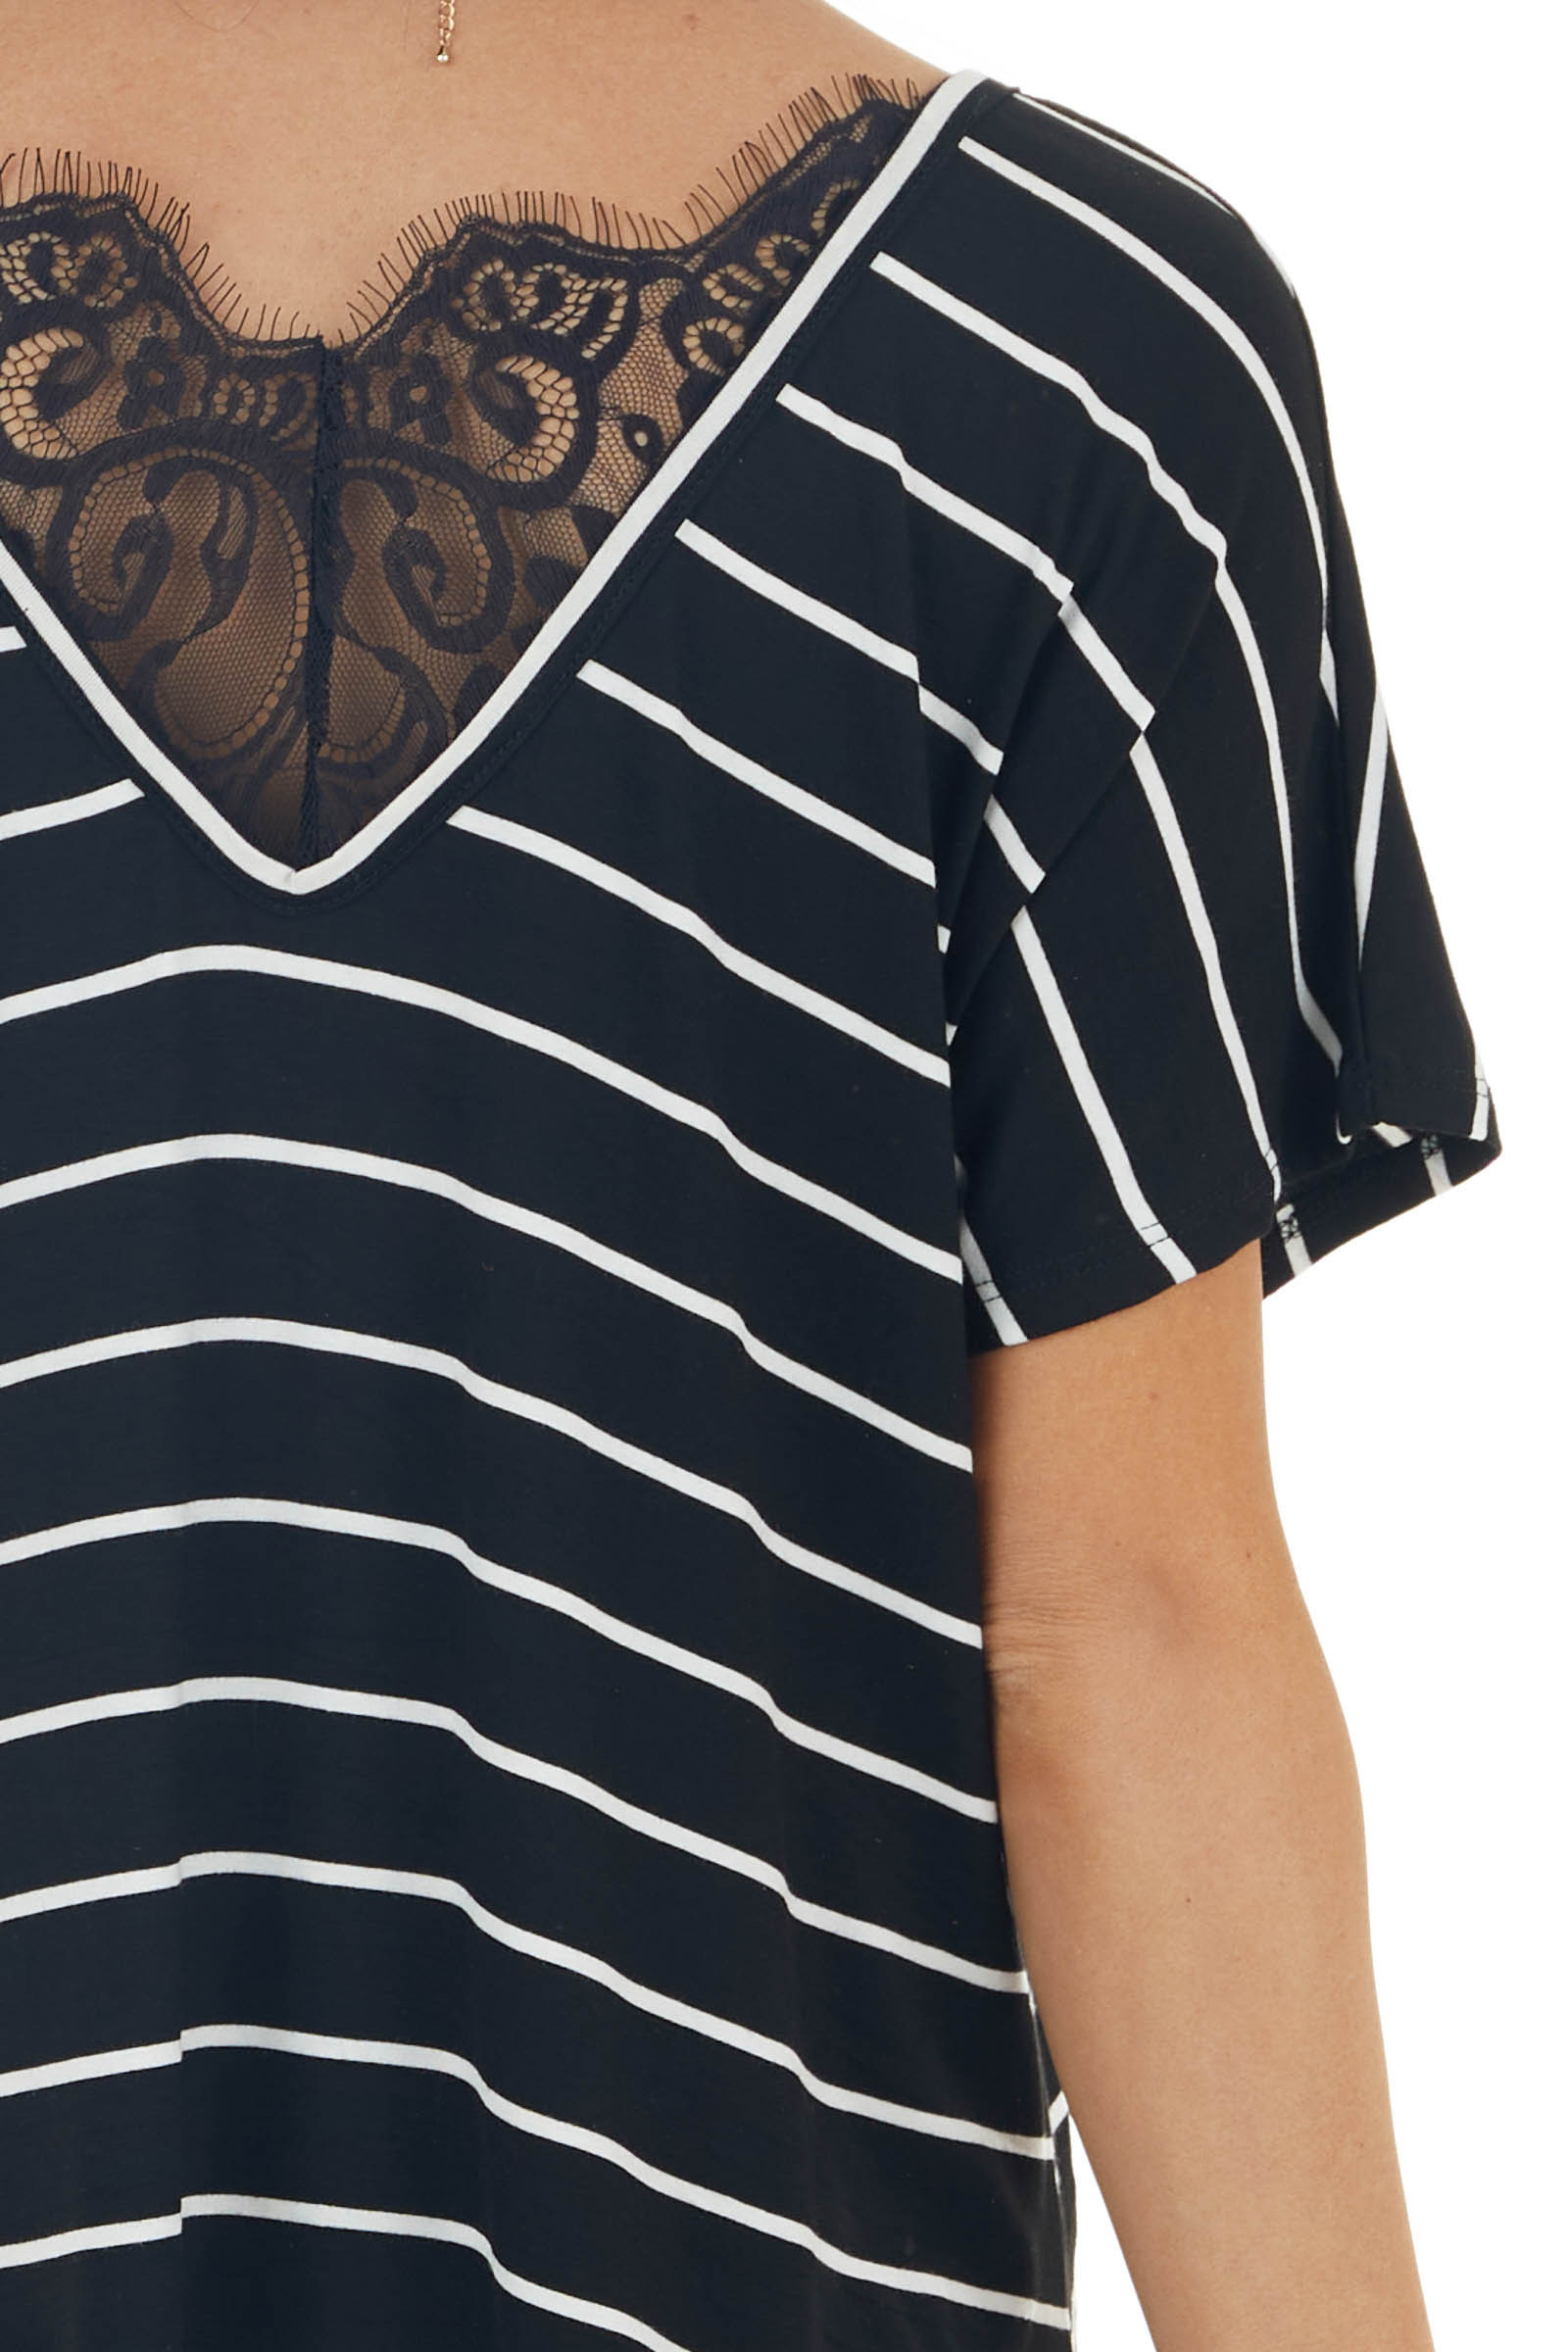 Black Striped Short Sleeve Knit Top with Lace Detail